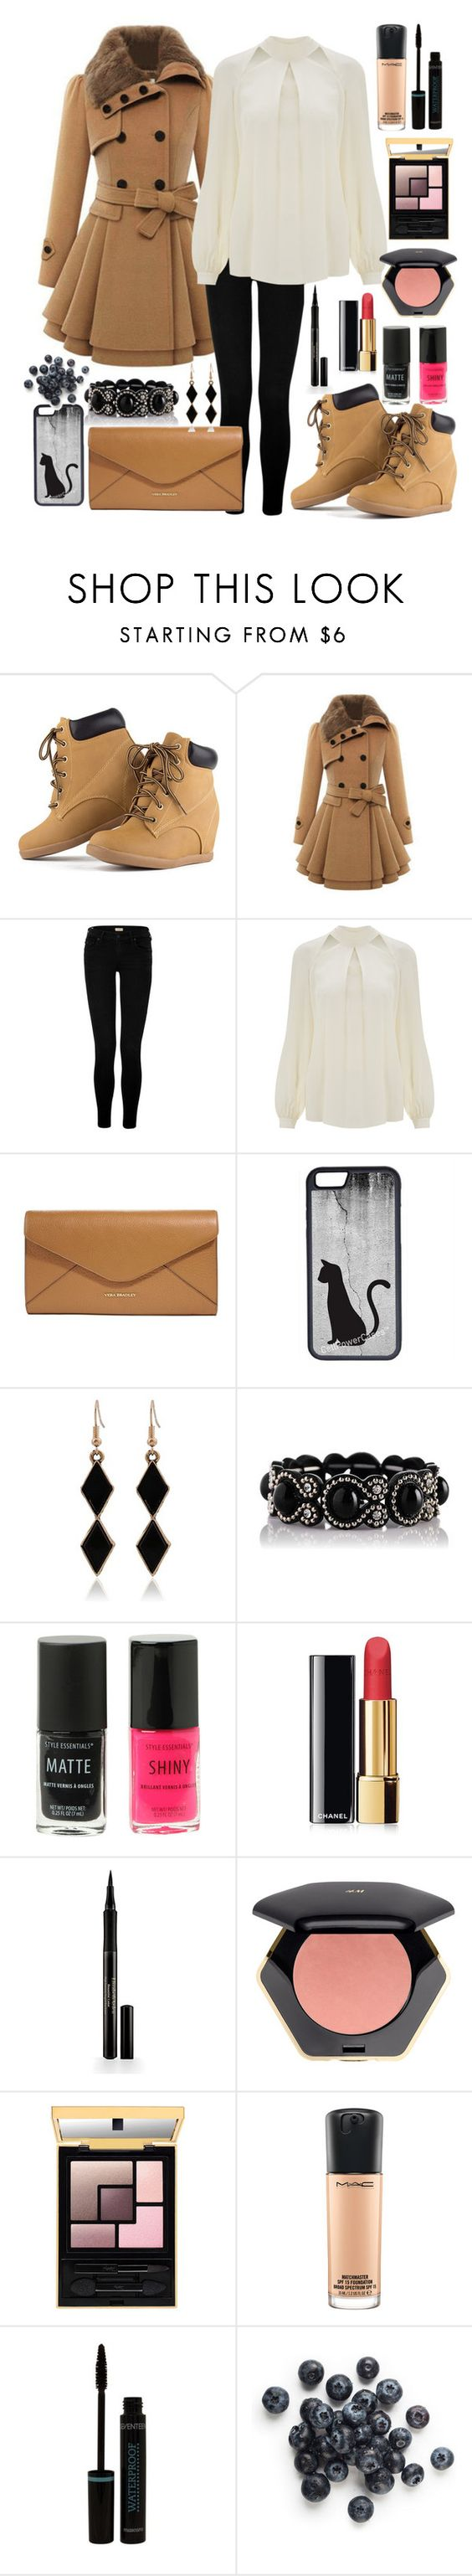 """""""winter"""" by naty2001 ❤ liked on Polyvore featuring True Religion, Temperley London, Vera Bradley, CellPowerCases, Chanel, Elizabeth Arden, H&M and MAC Cosmetics"""